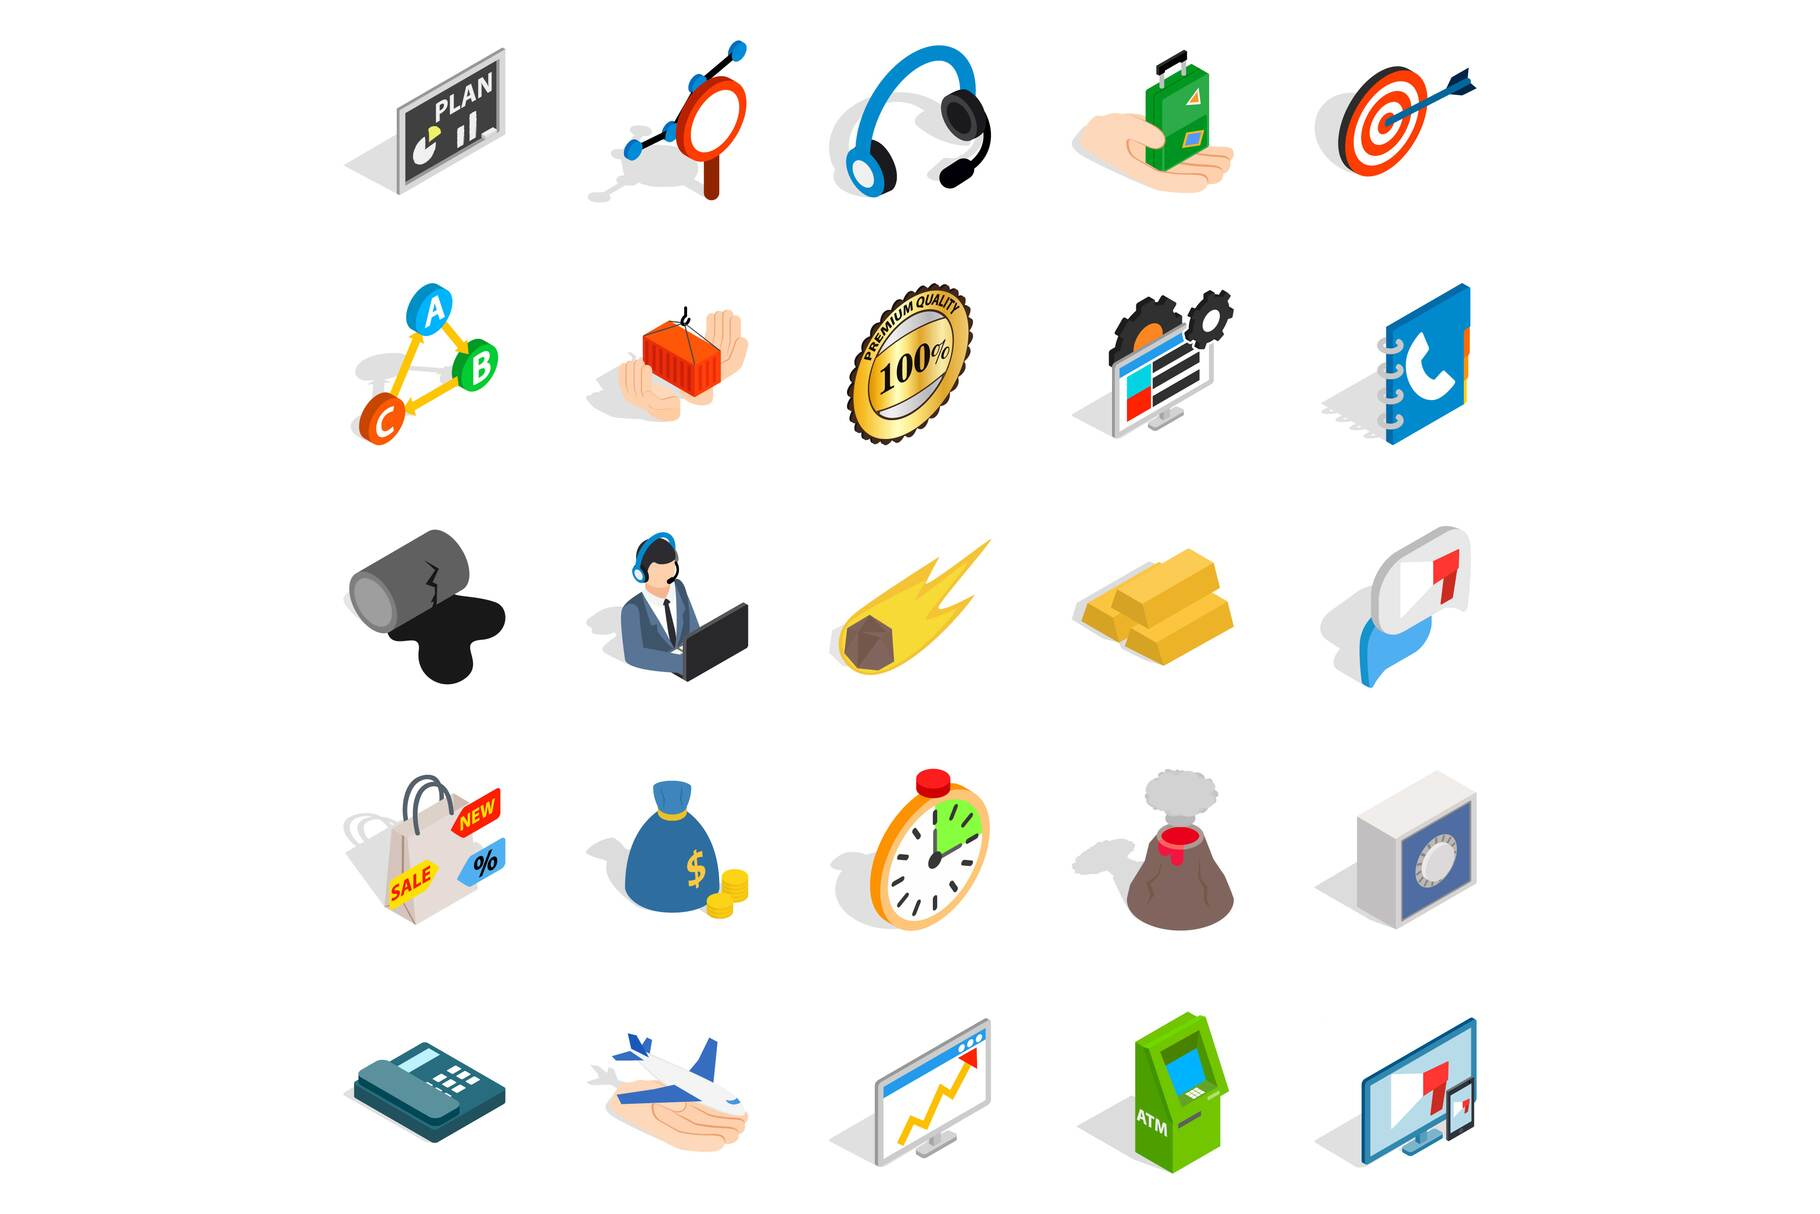 Conference icons set, isometric style example image 1